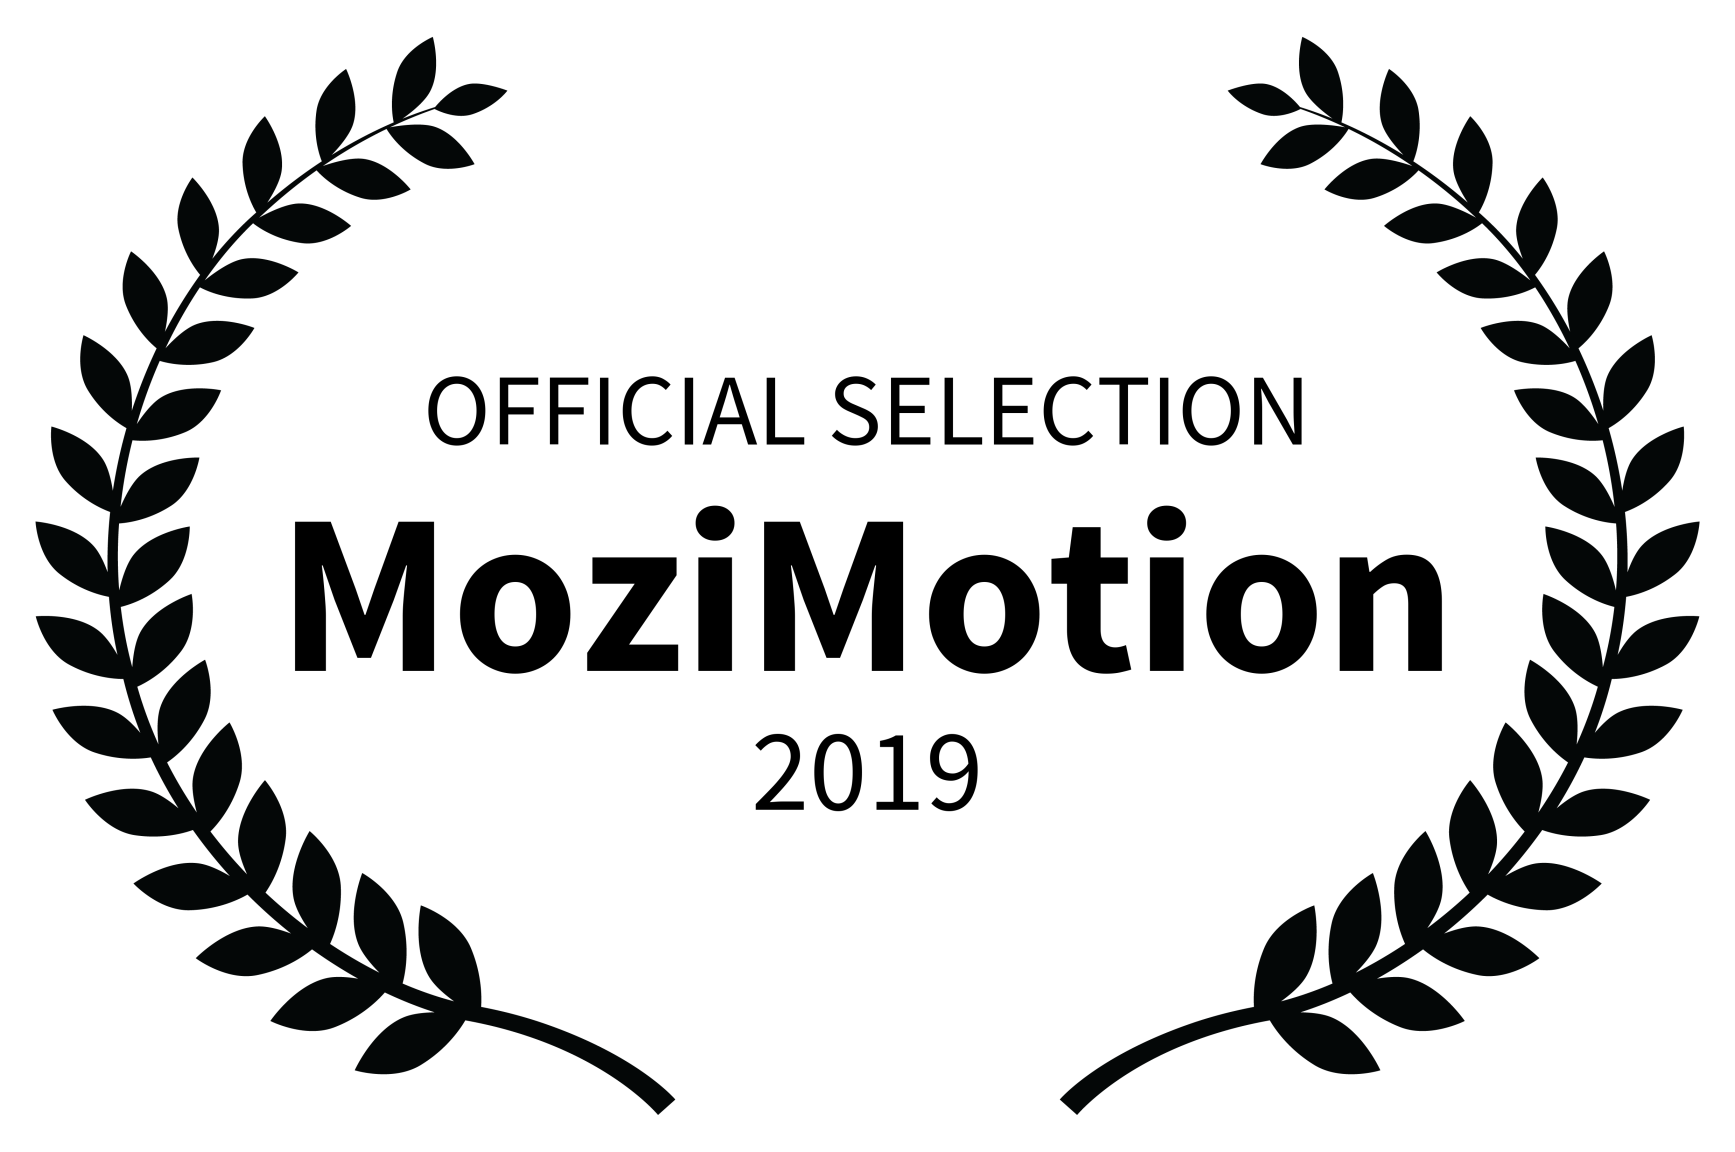 OFFICIAL SELECTION - MoziMotion - 2019